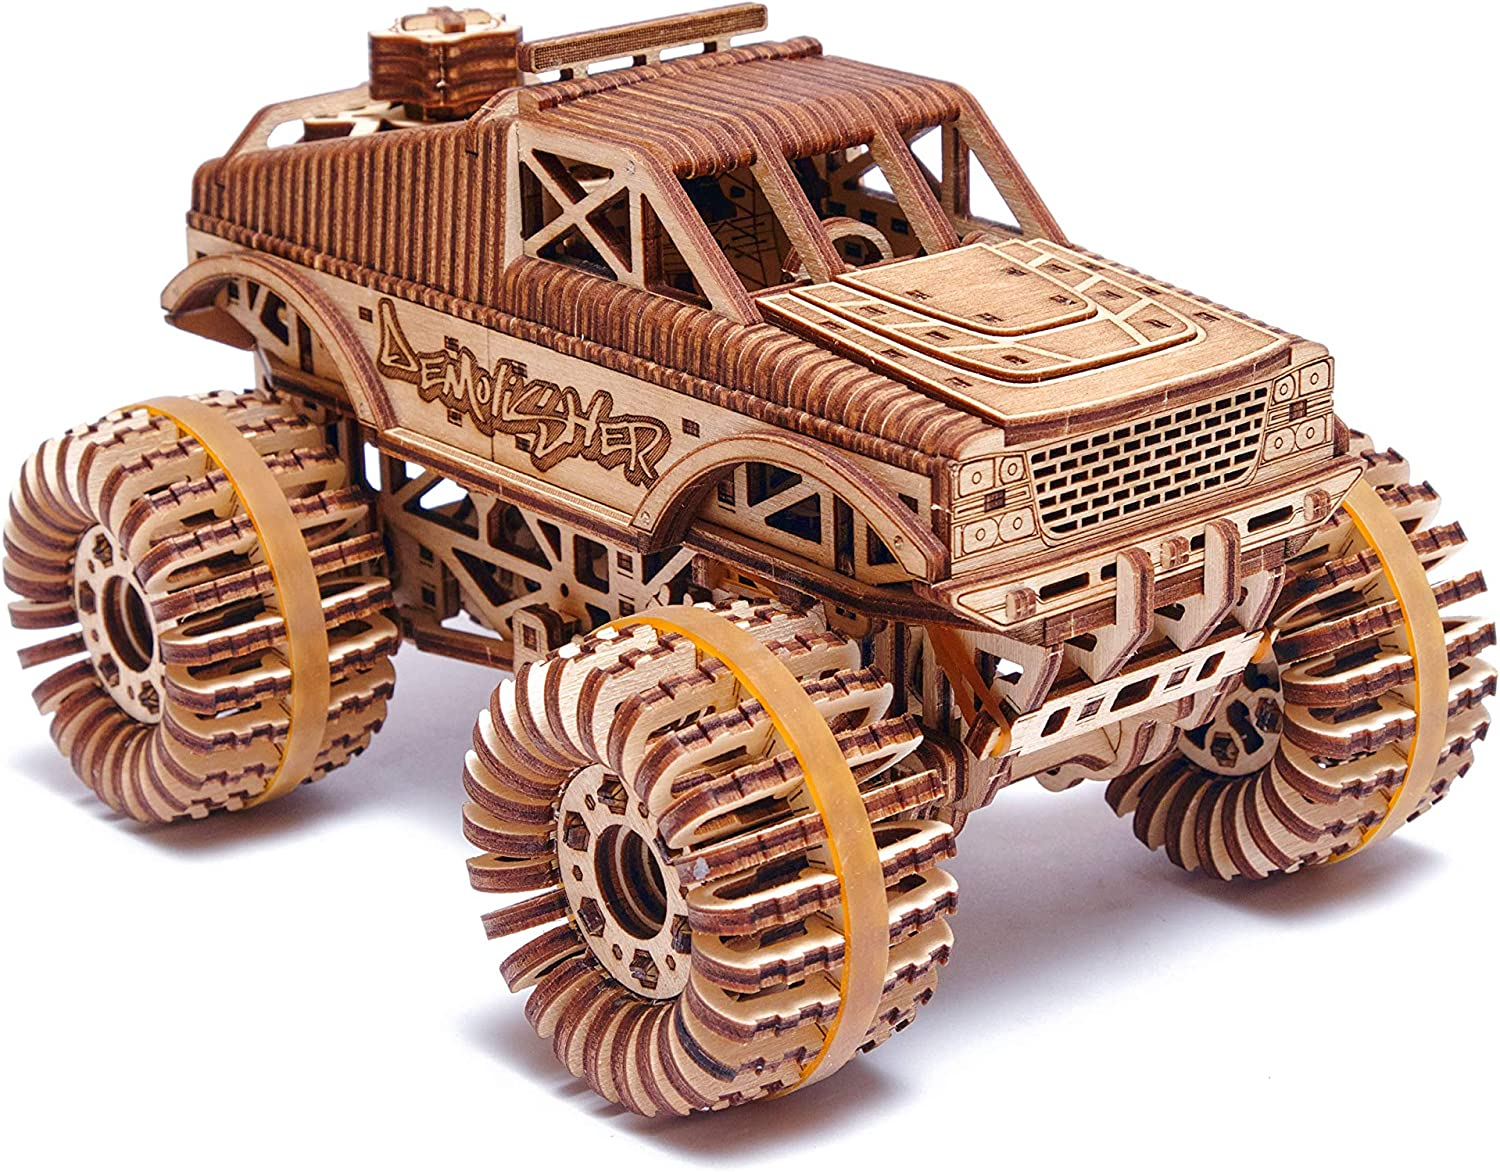 Wood Trick Monster Max 83% OFF Las Vegas Mall Pickup Truck Car up 3D Wooden Puzzle - Rides